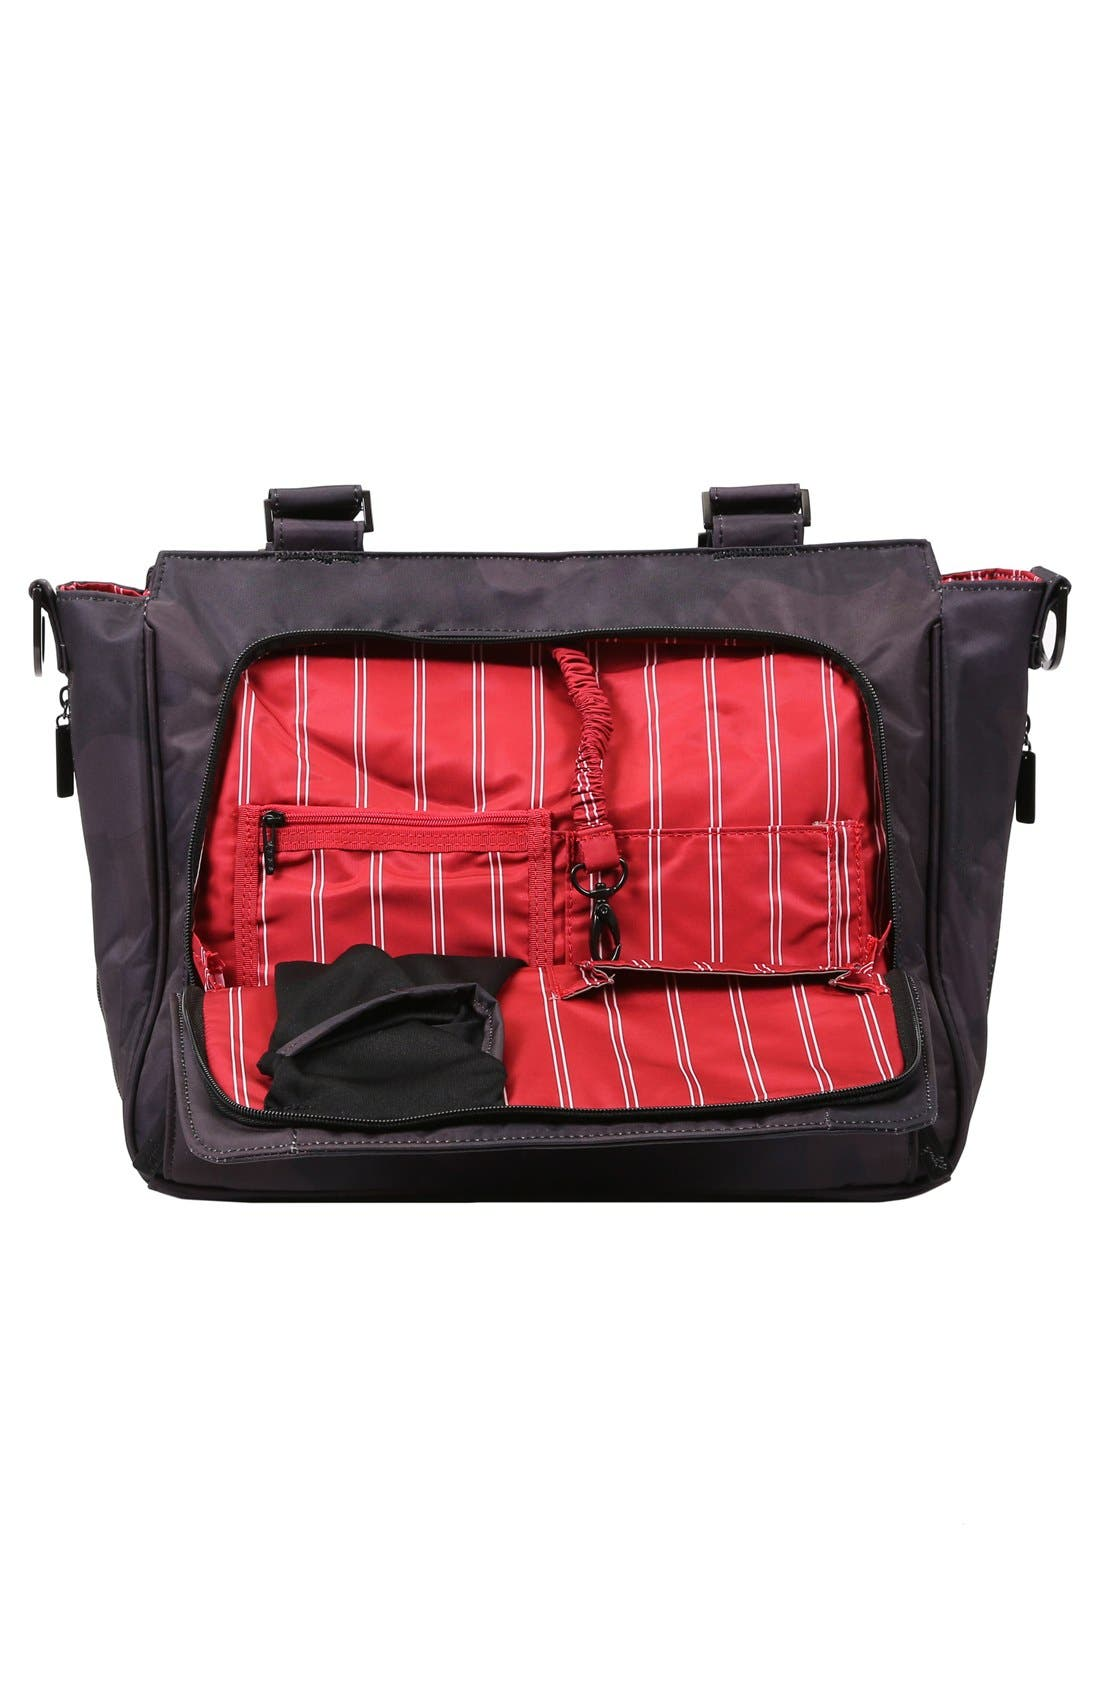 'Be Classy - Onyx Collection' Messenger Diaper Bag,                             Alternate thumbnail 6, color,                             Black Ops